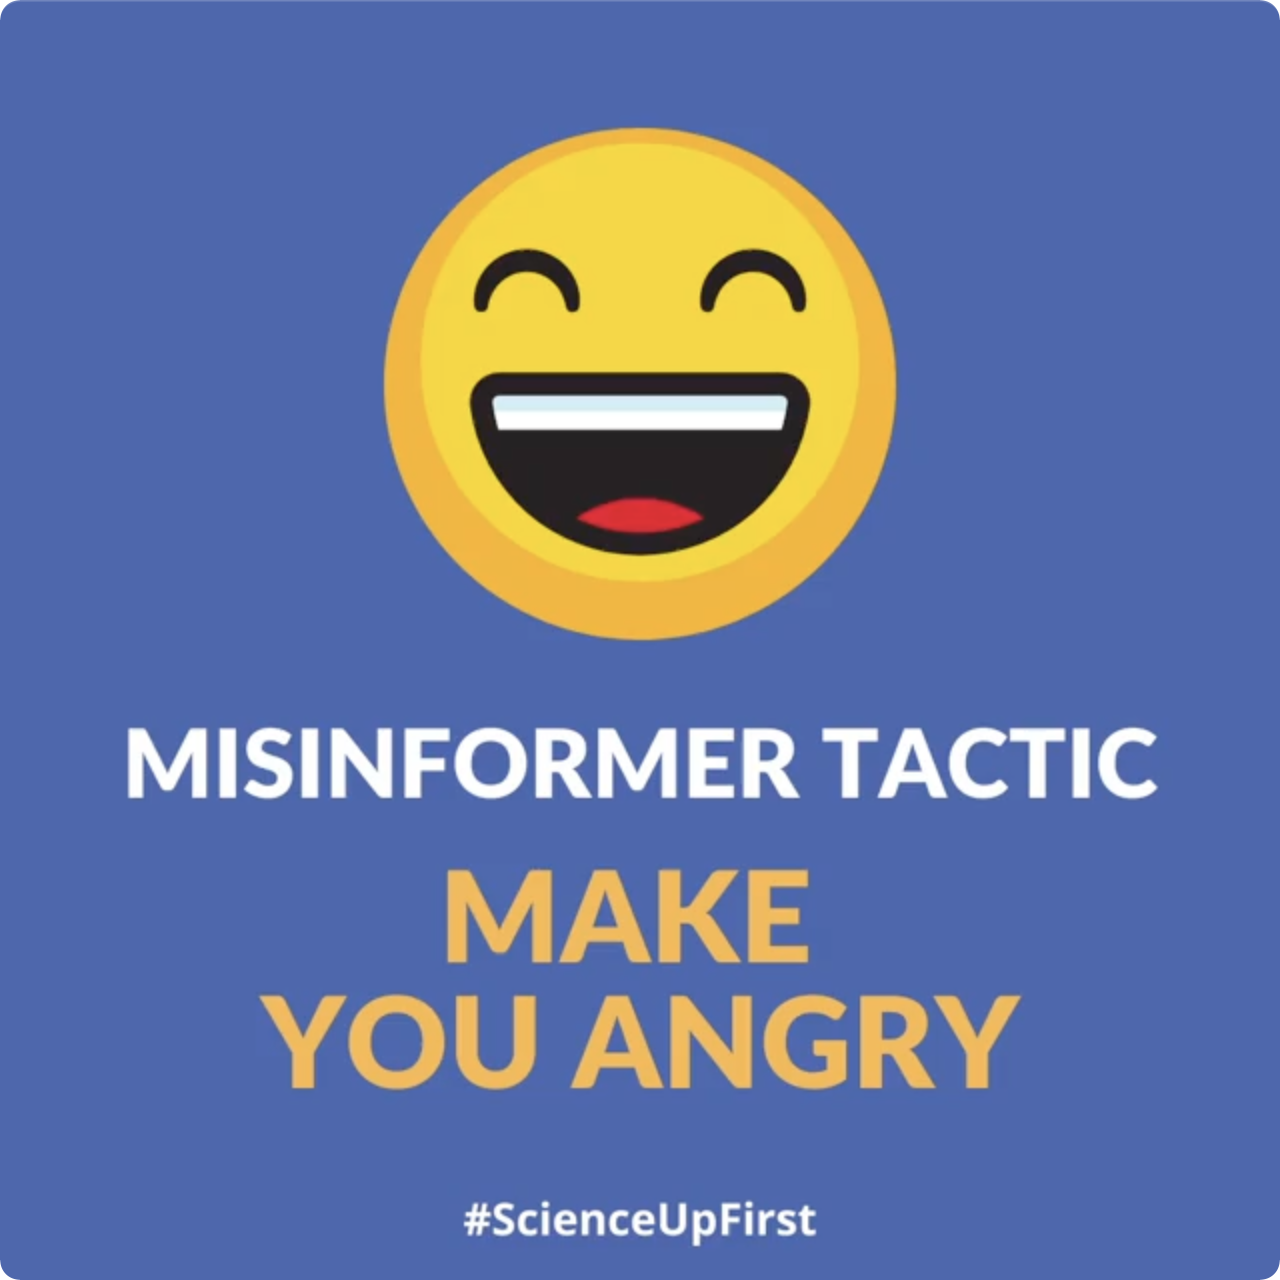 Misinformer Tactic: Make you angry